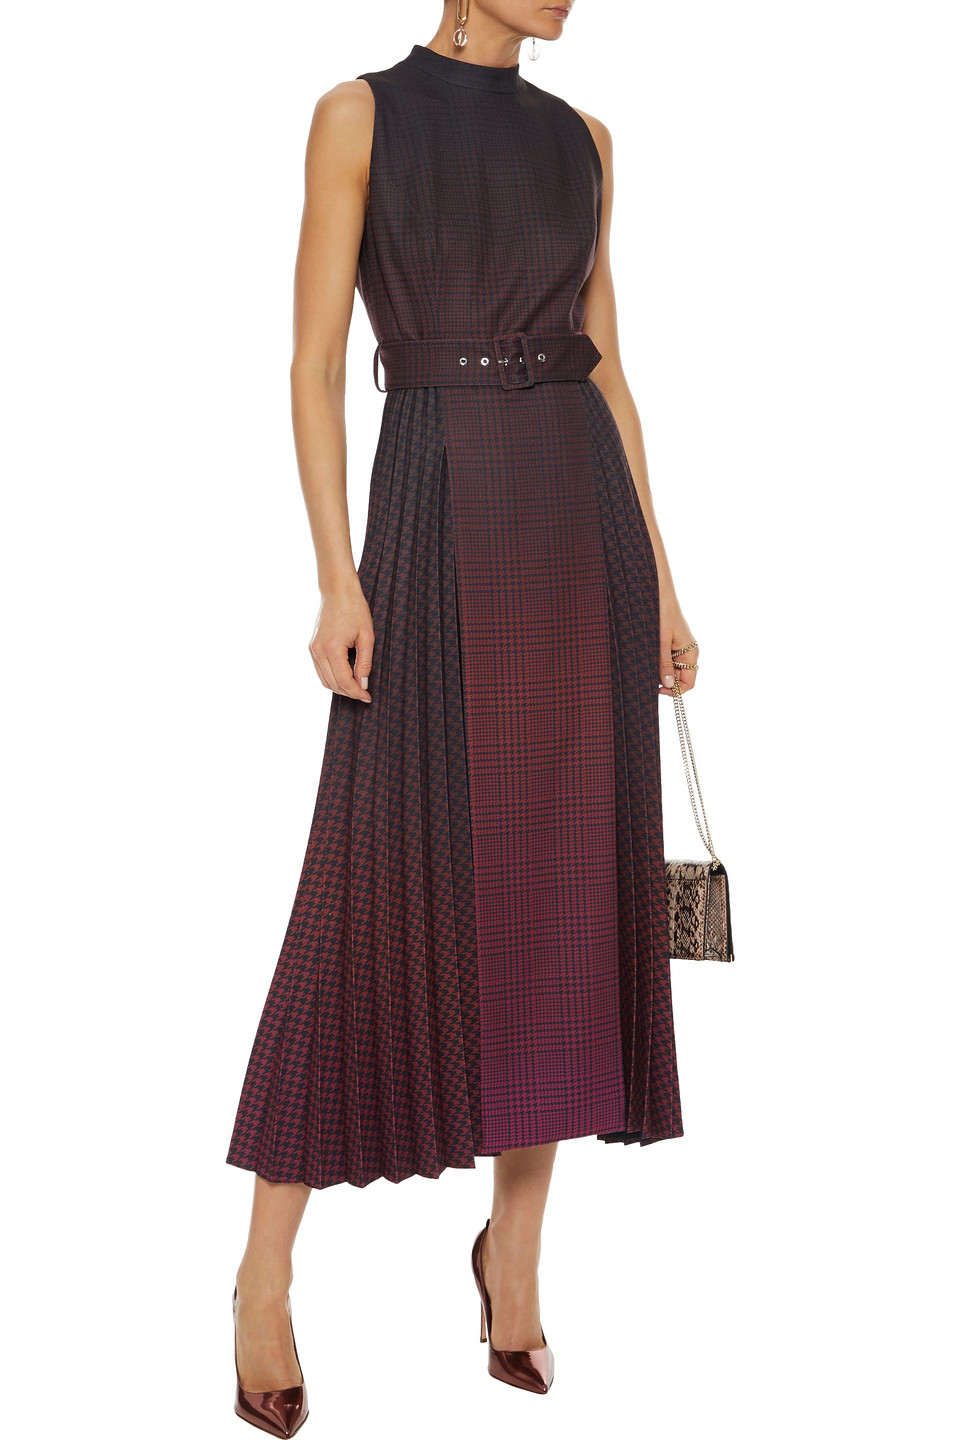 MARY KATRANZOU | Mary Katrantzou Woman Julia Belted Pleated Degrade Houndstooth Twill Midi Dress Plum | Clouty